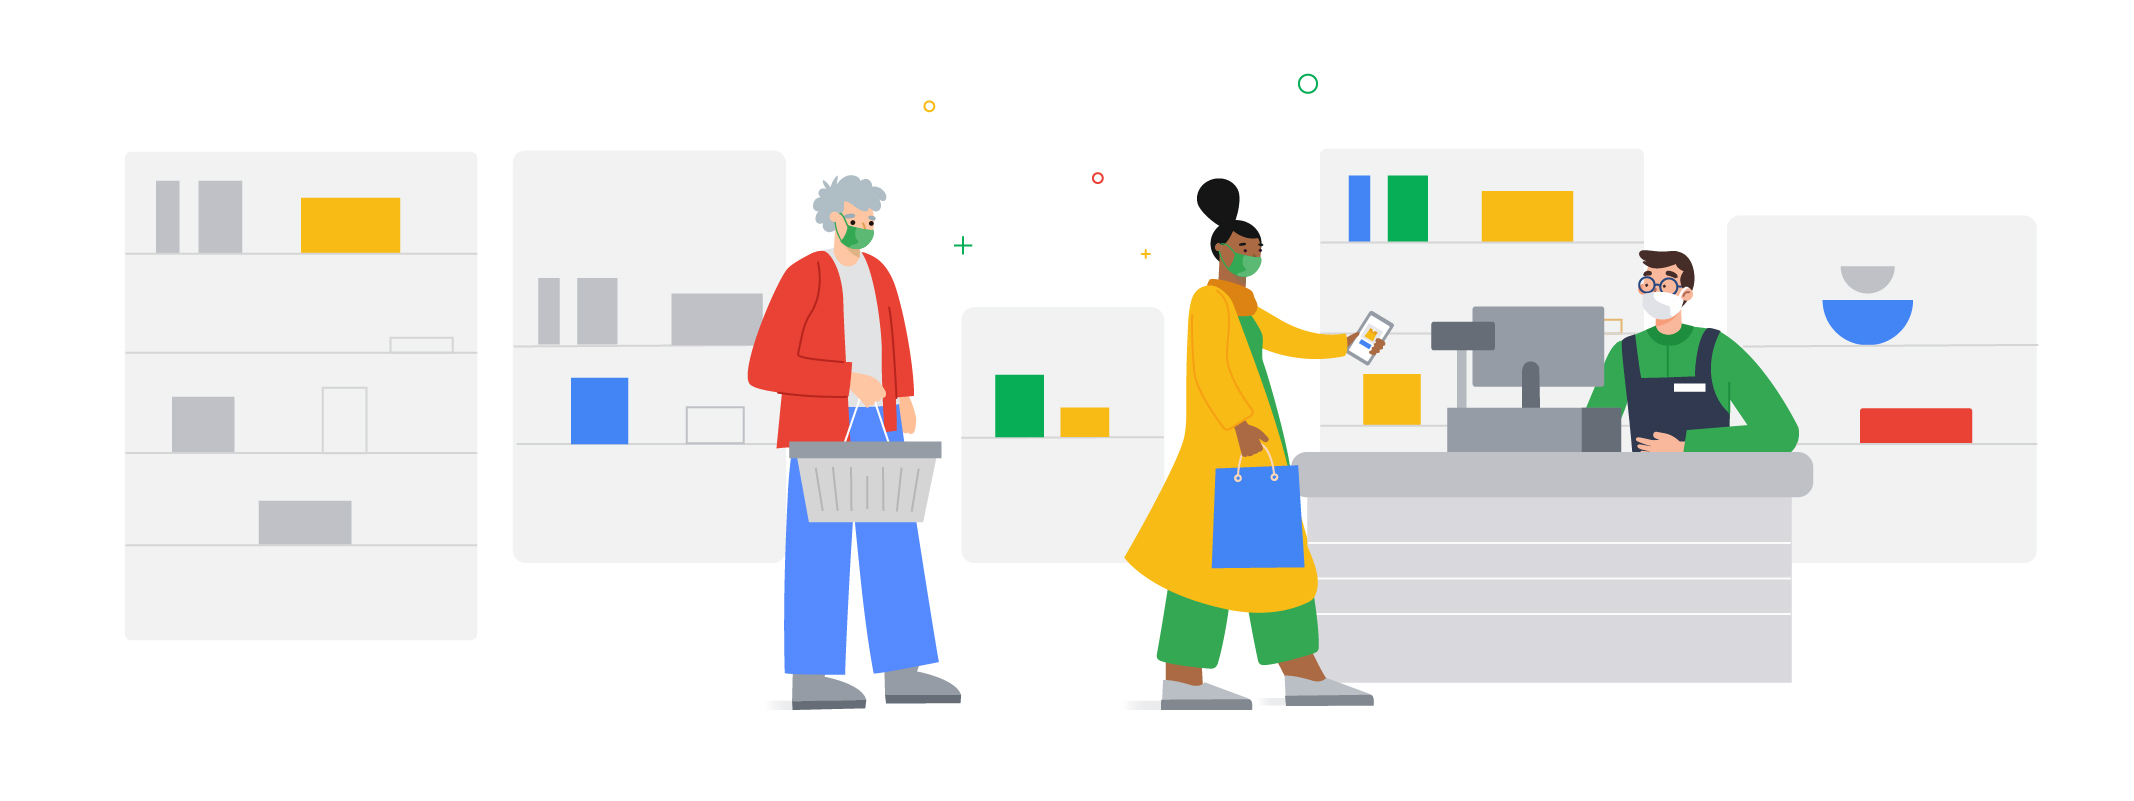 Retail Trends 2021: How the Pandemic is Changing Shopper Demands